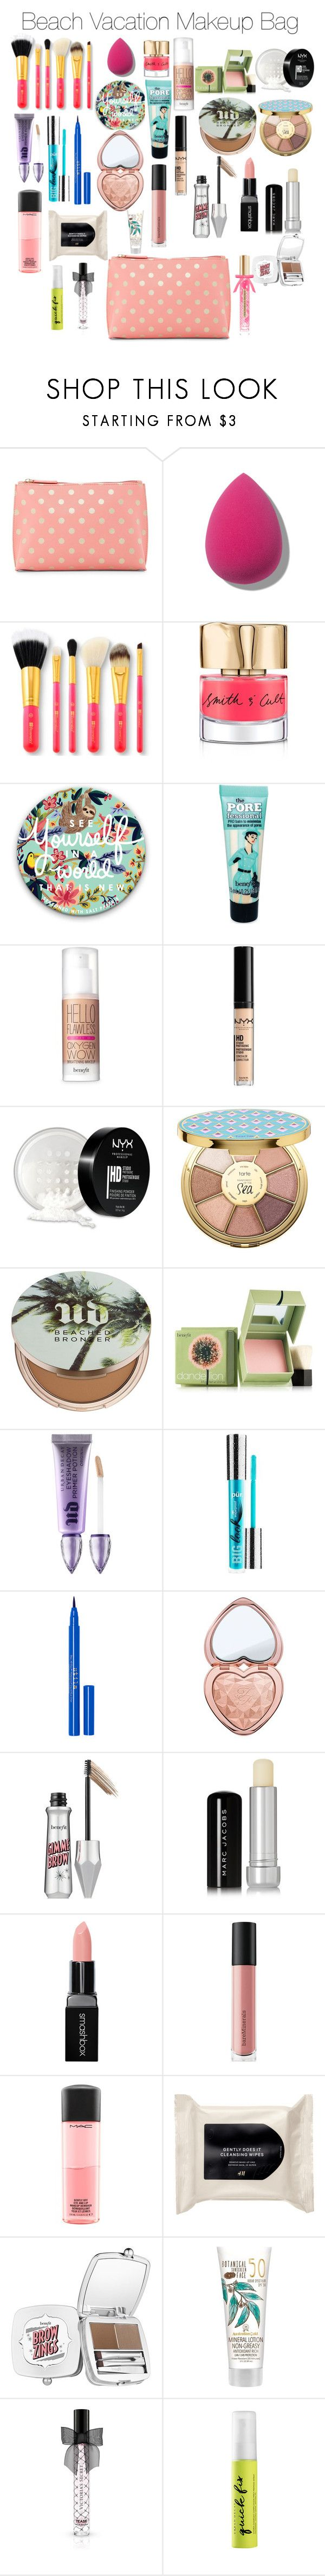 """2017 Beach Vacation Makeup Bag"" by ctrygrl1999 ❤ liked on Polyvore featuring beauty, Shiraleah, Smith & Cult, Benefit, NYX, tarte, Urban Decay, Stila, Too Faced Cosmetics and Marc Jacobs"